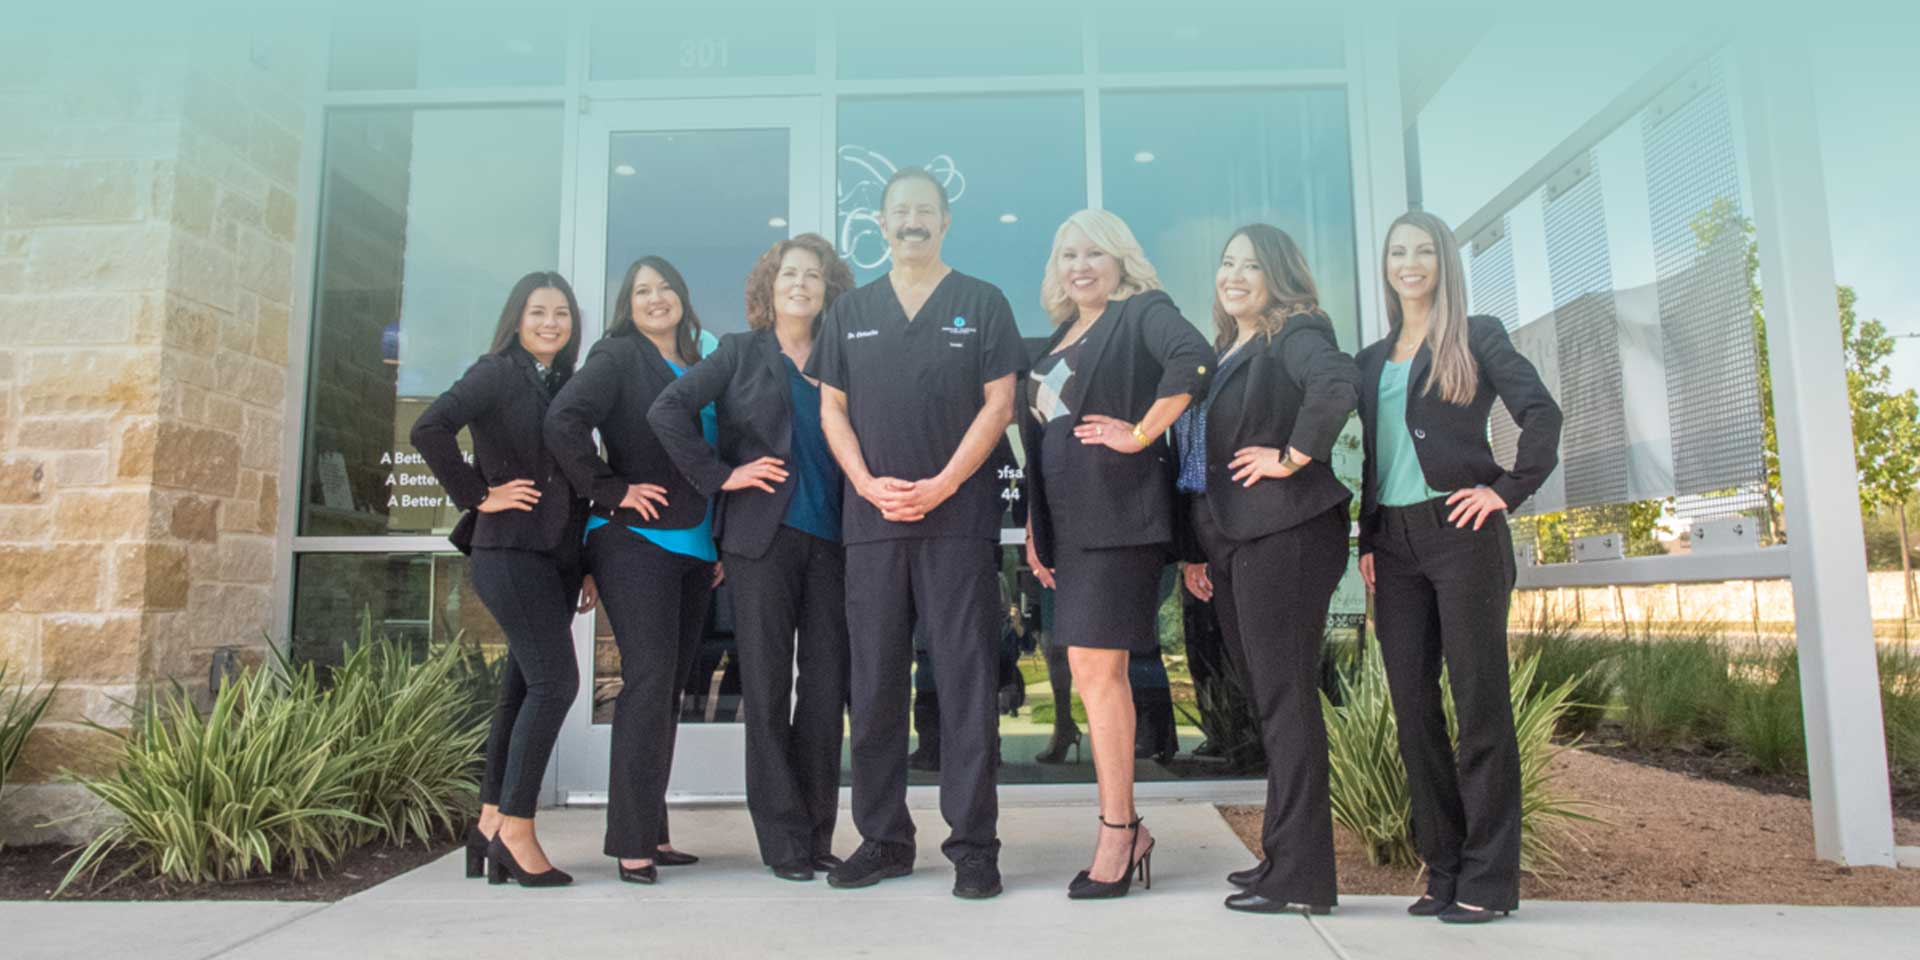 The dental team at Cosmetic Dentistry of San Antonio standing in front of their office